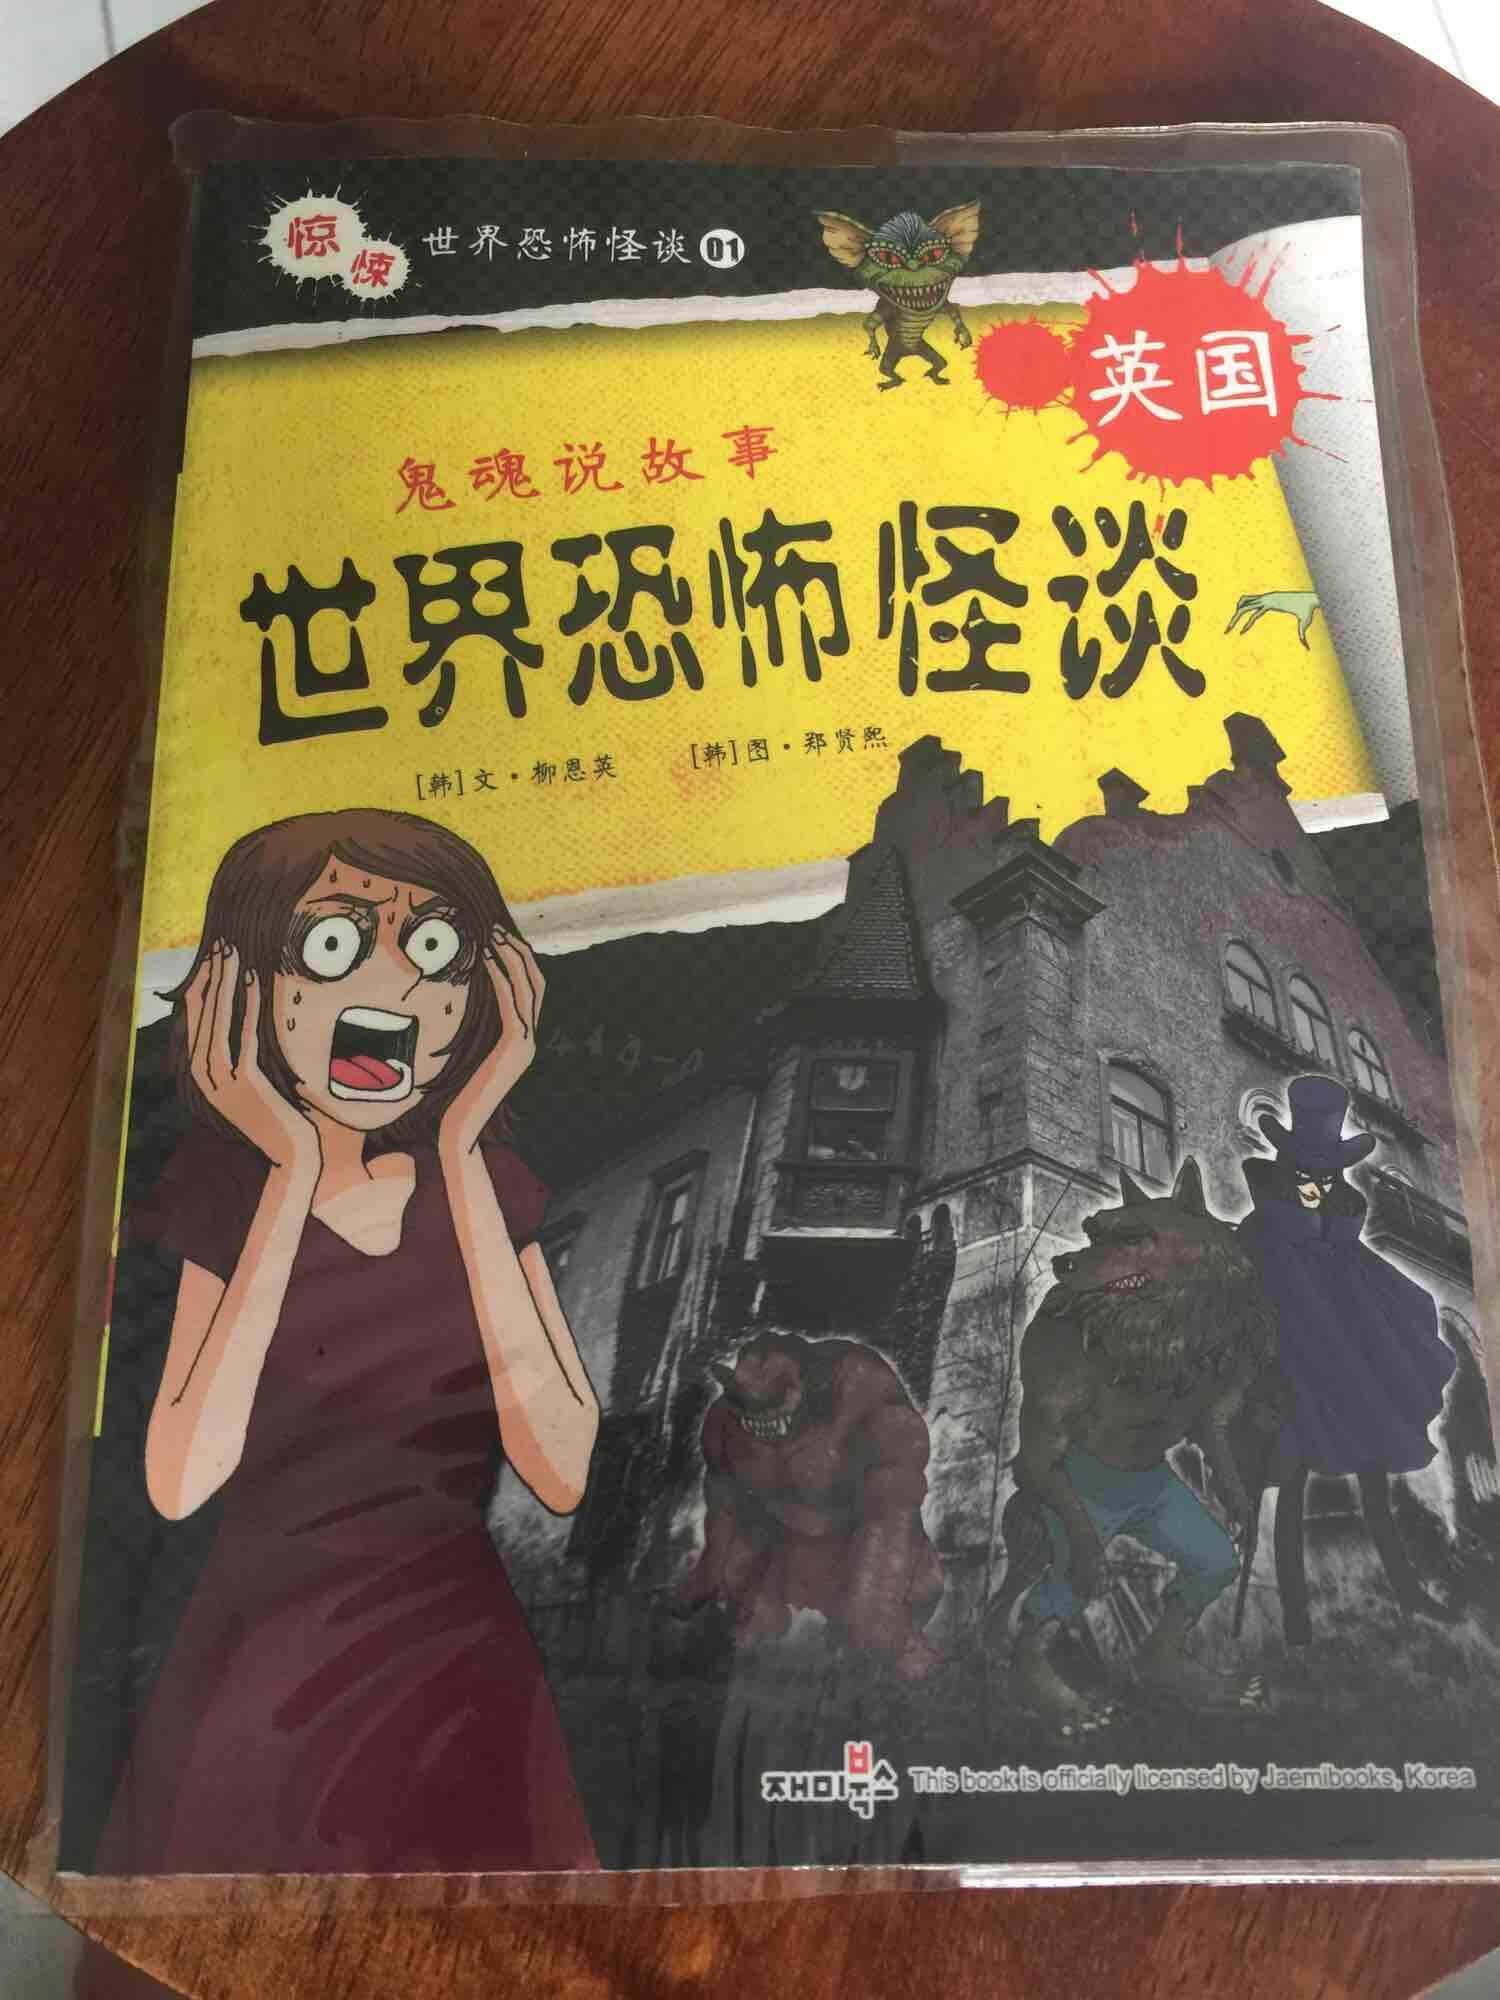 Storybook 《世界恐怖怪谈》(英国)second Hand By Jin Shop.